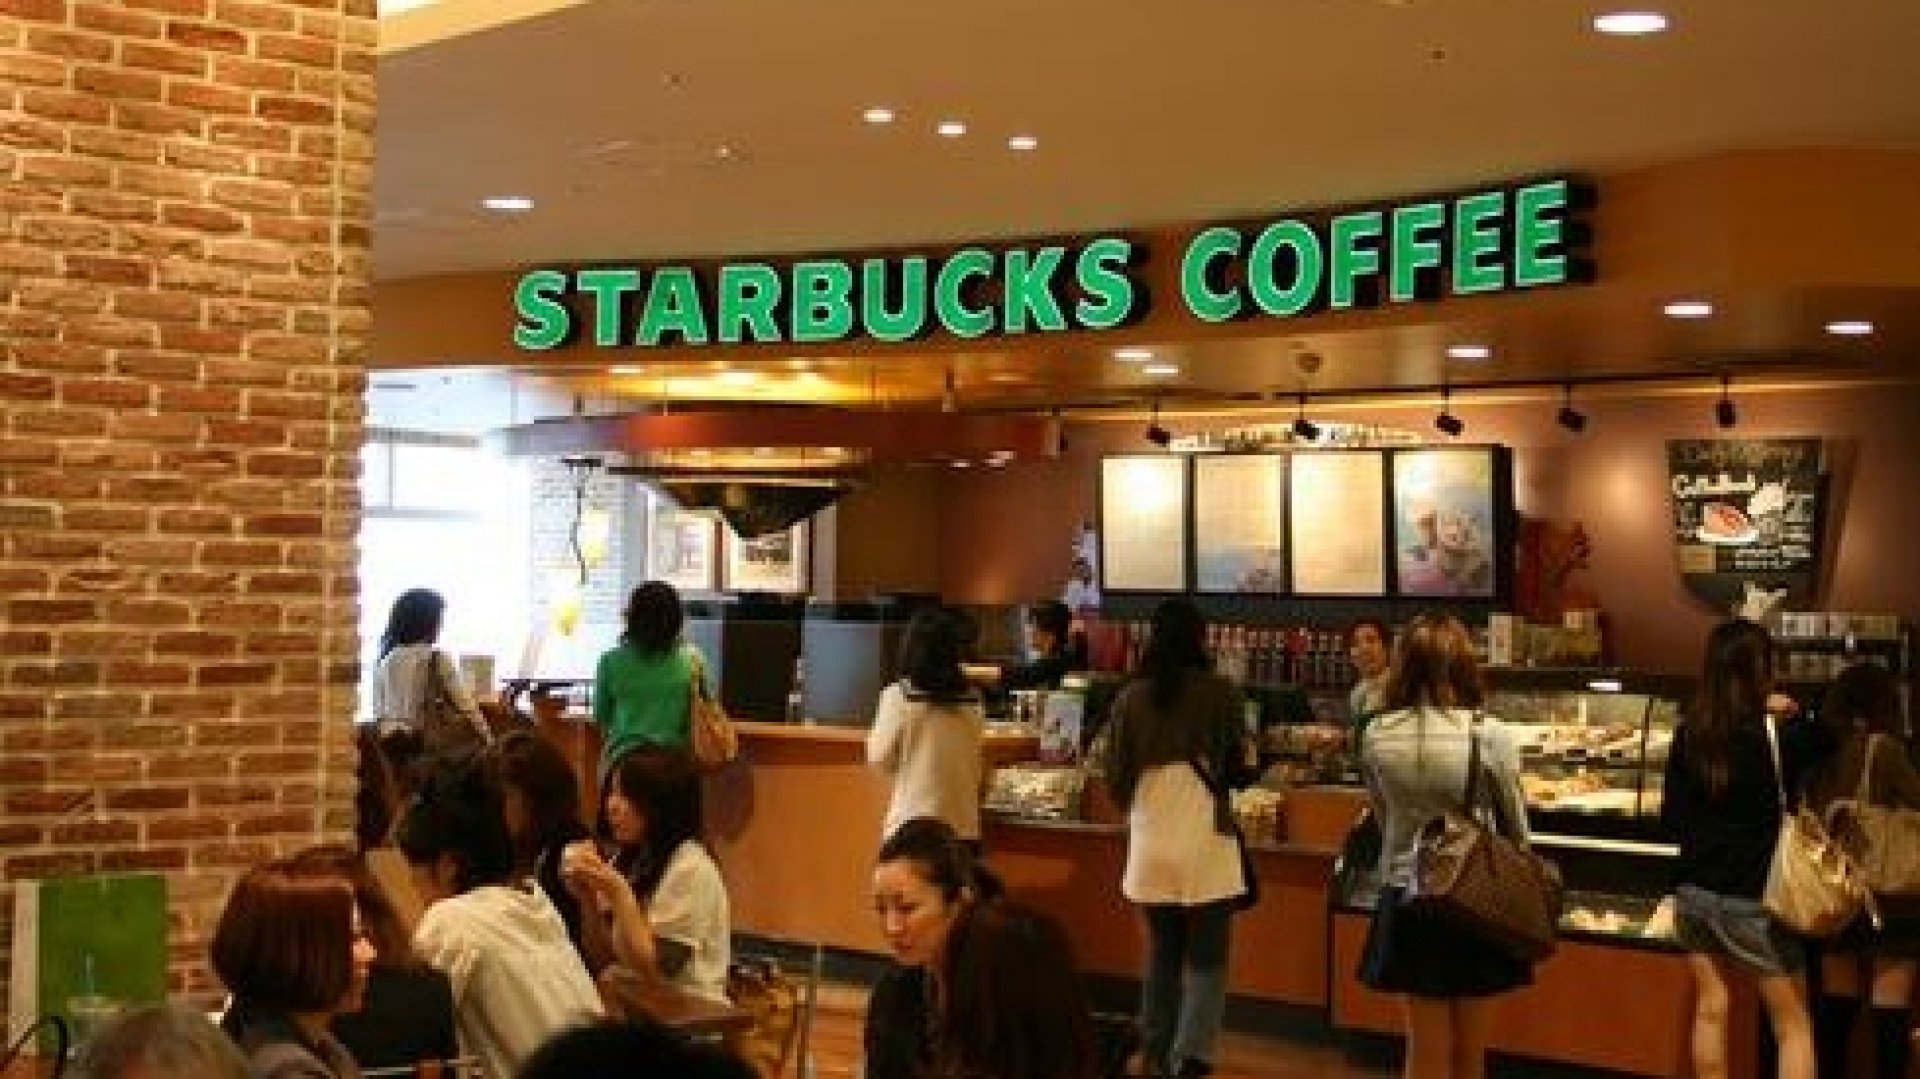 starbucks internationalization in recent years Starbucks ceo howard schultz reinforces company  expands starbucks college achievement plan to offer full tuition coverage for all four years of an undergraduate.